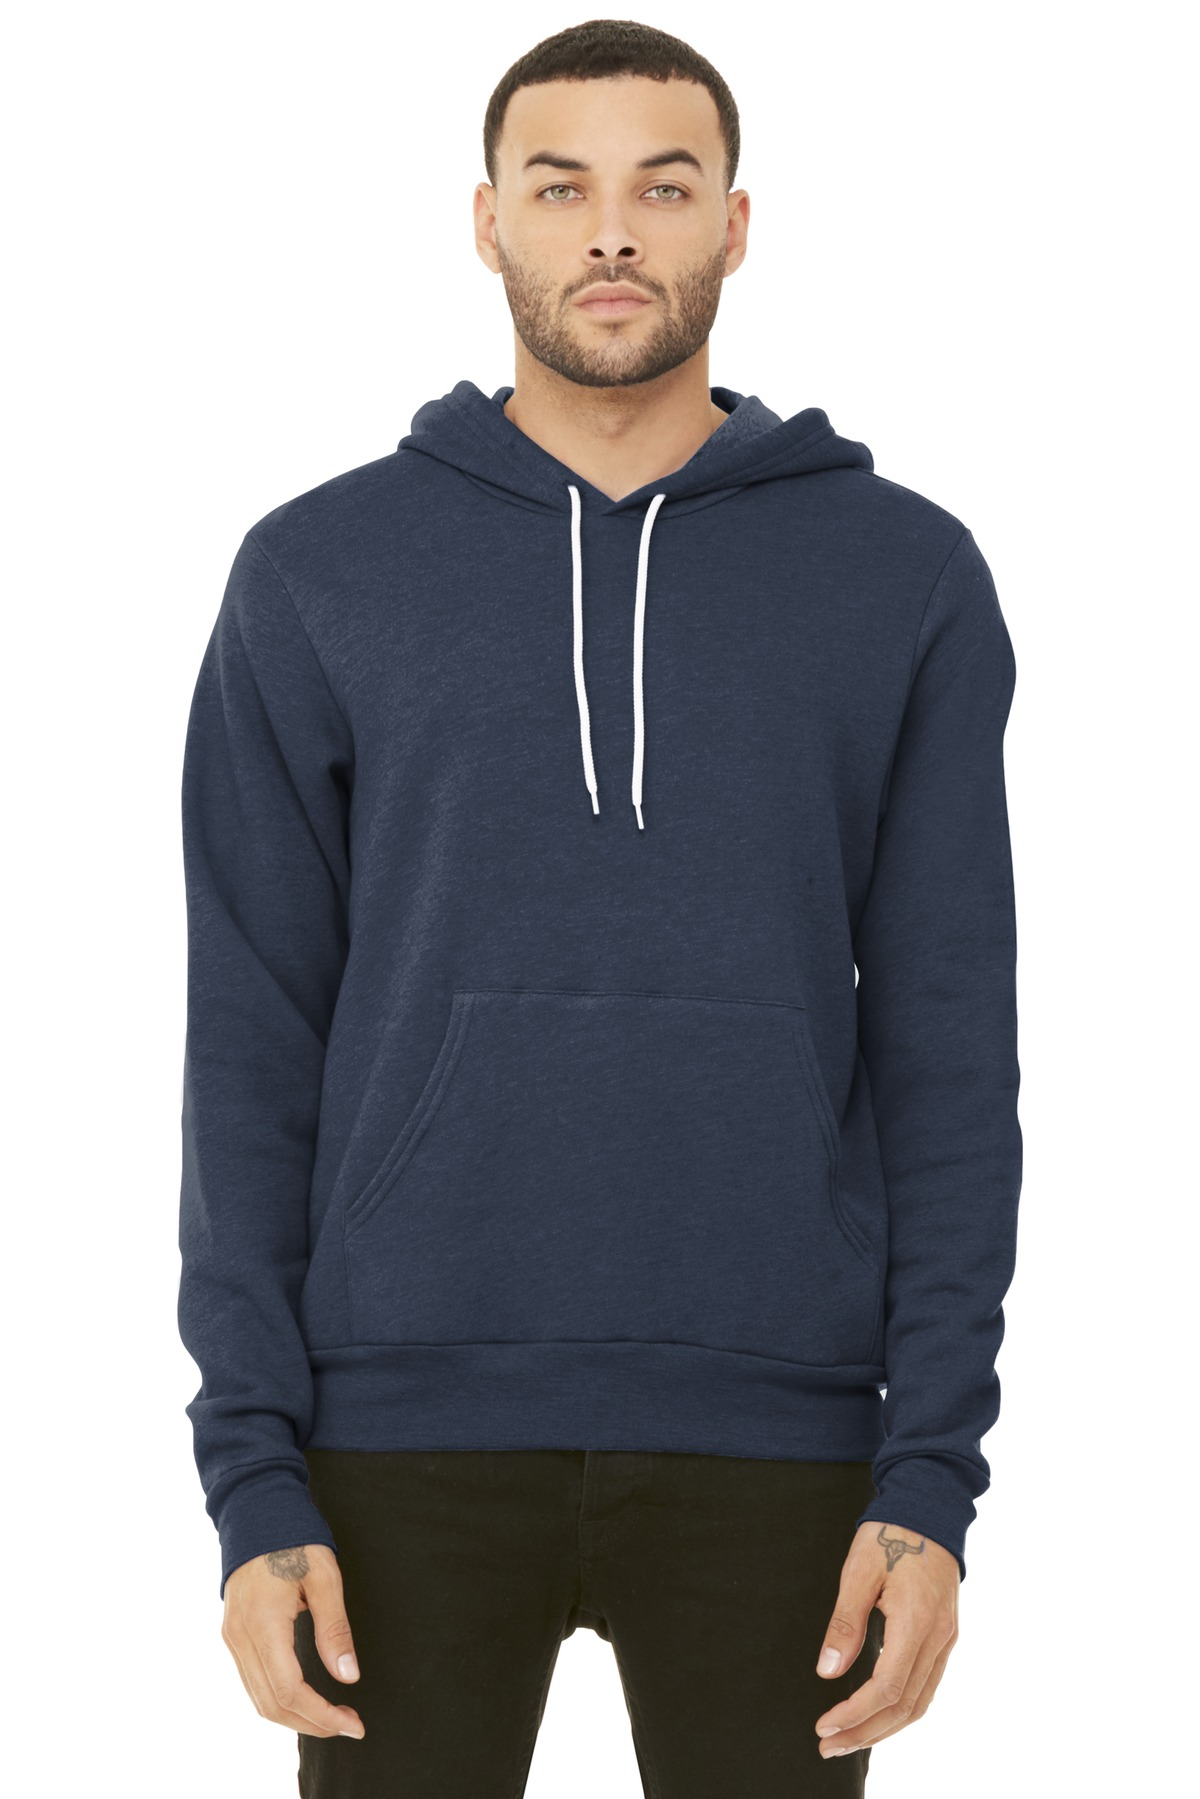 BELLA+CANVAS  ®  Unisex Sponge Fleece Pullover Hoodie. BC3719 - Heather Navy